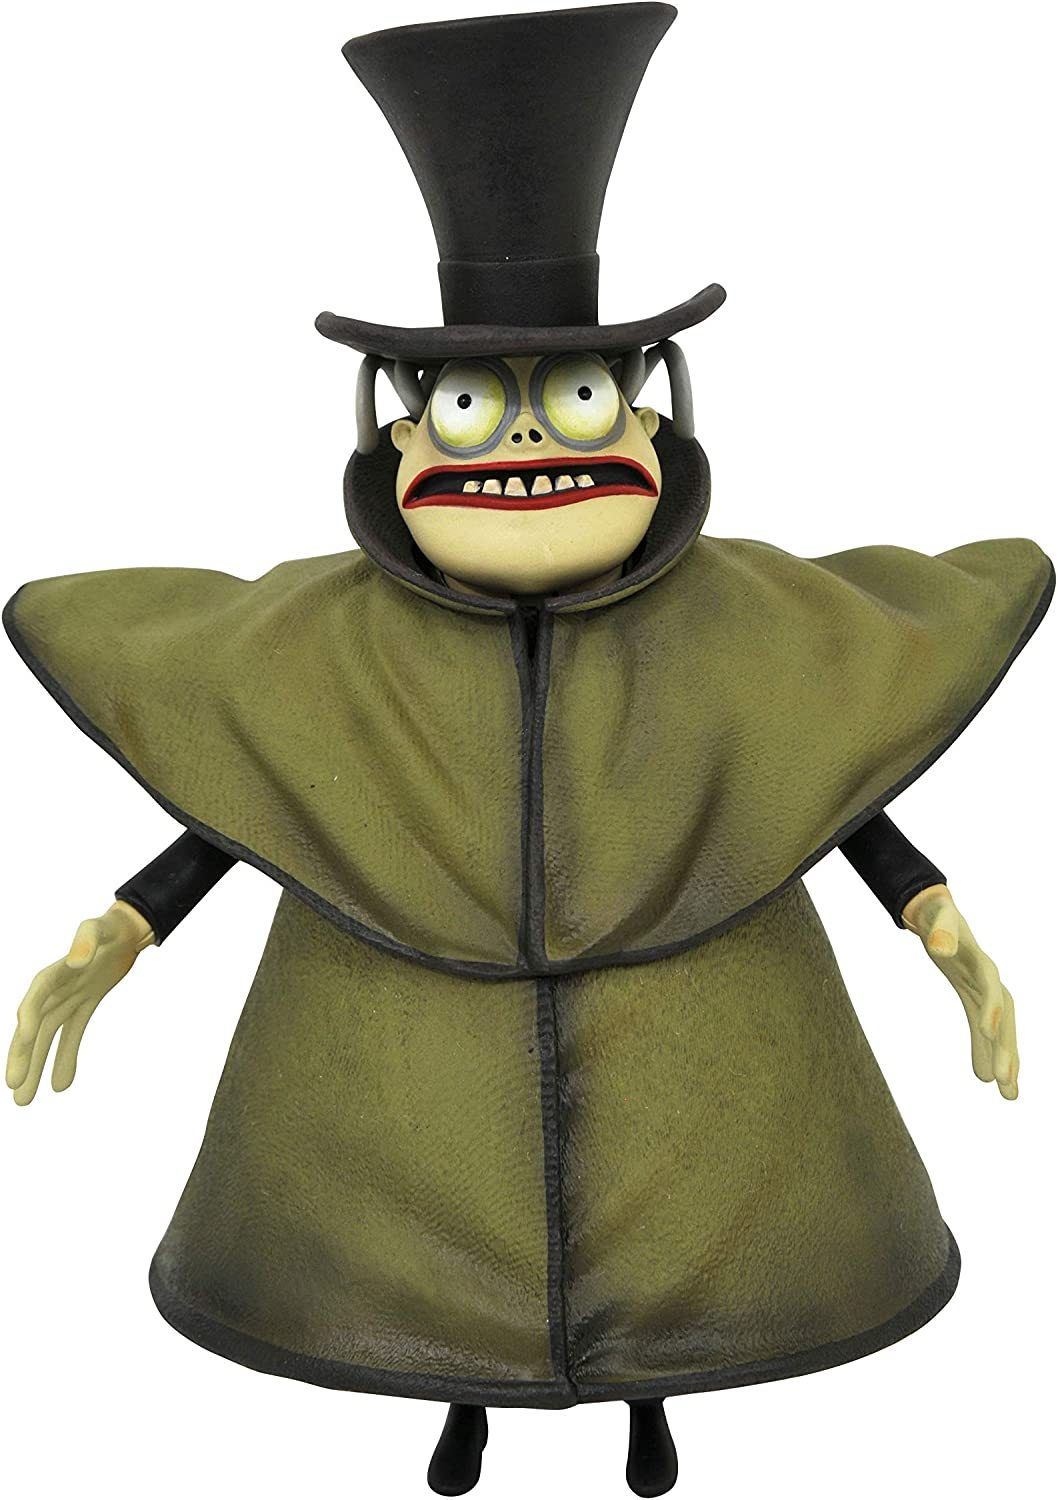 The Nightmare Before Christmas Mr Hyde Select Action Figure Toys Games Amazon Canada Find this pin and more on the nightmare before christmas by sally finklestein. nightmare before christmas mr hyde